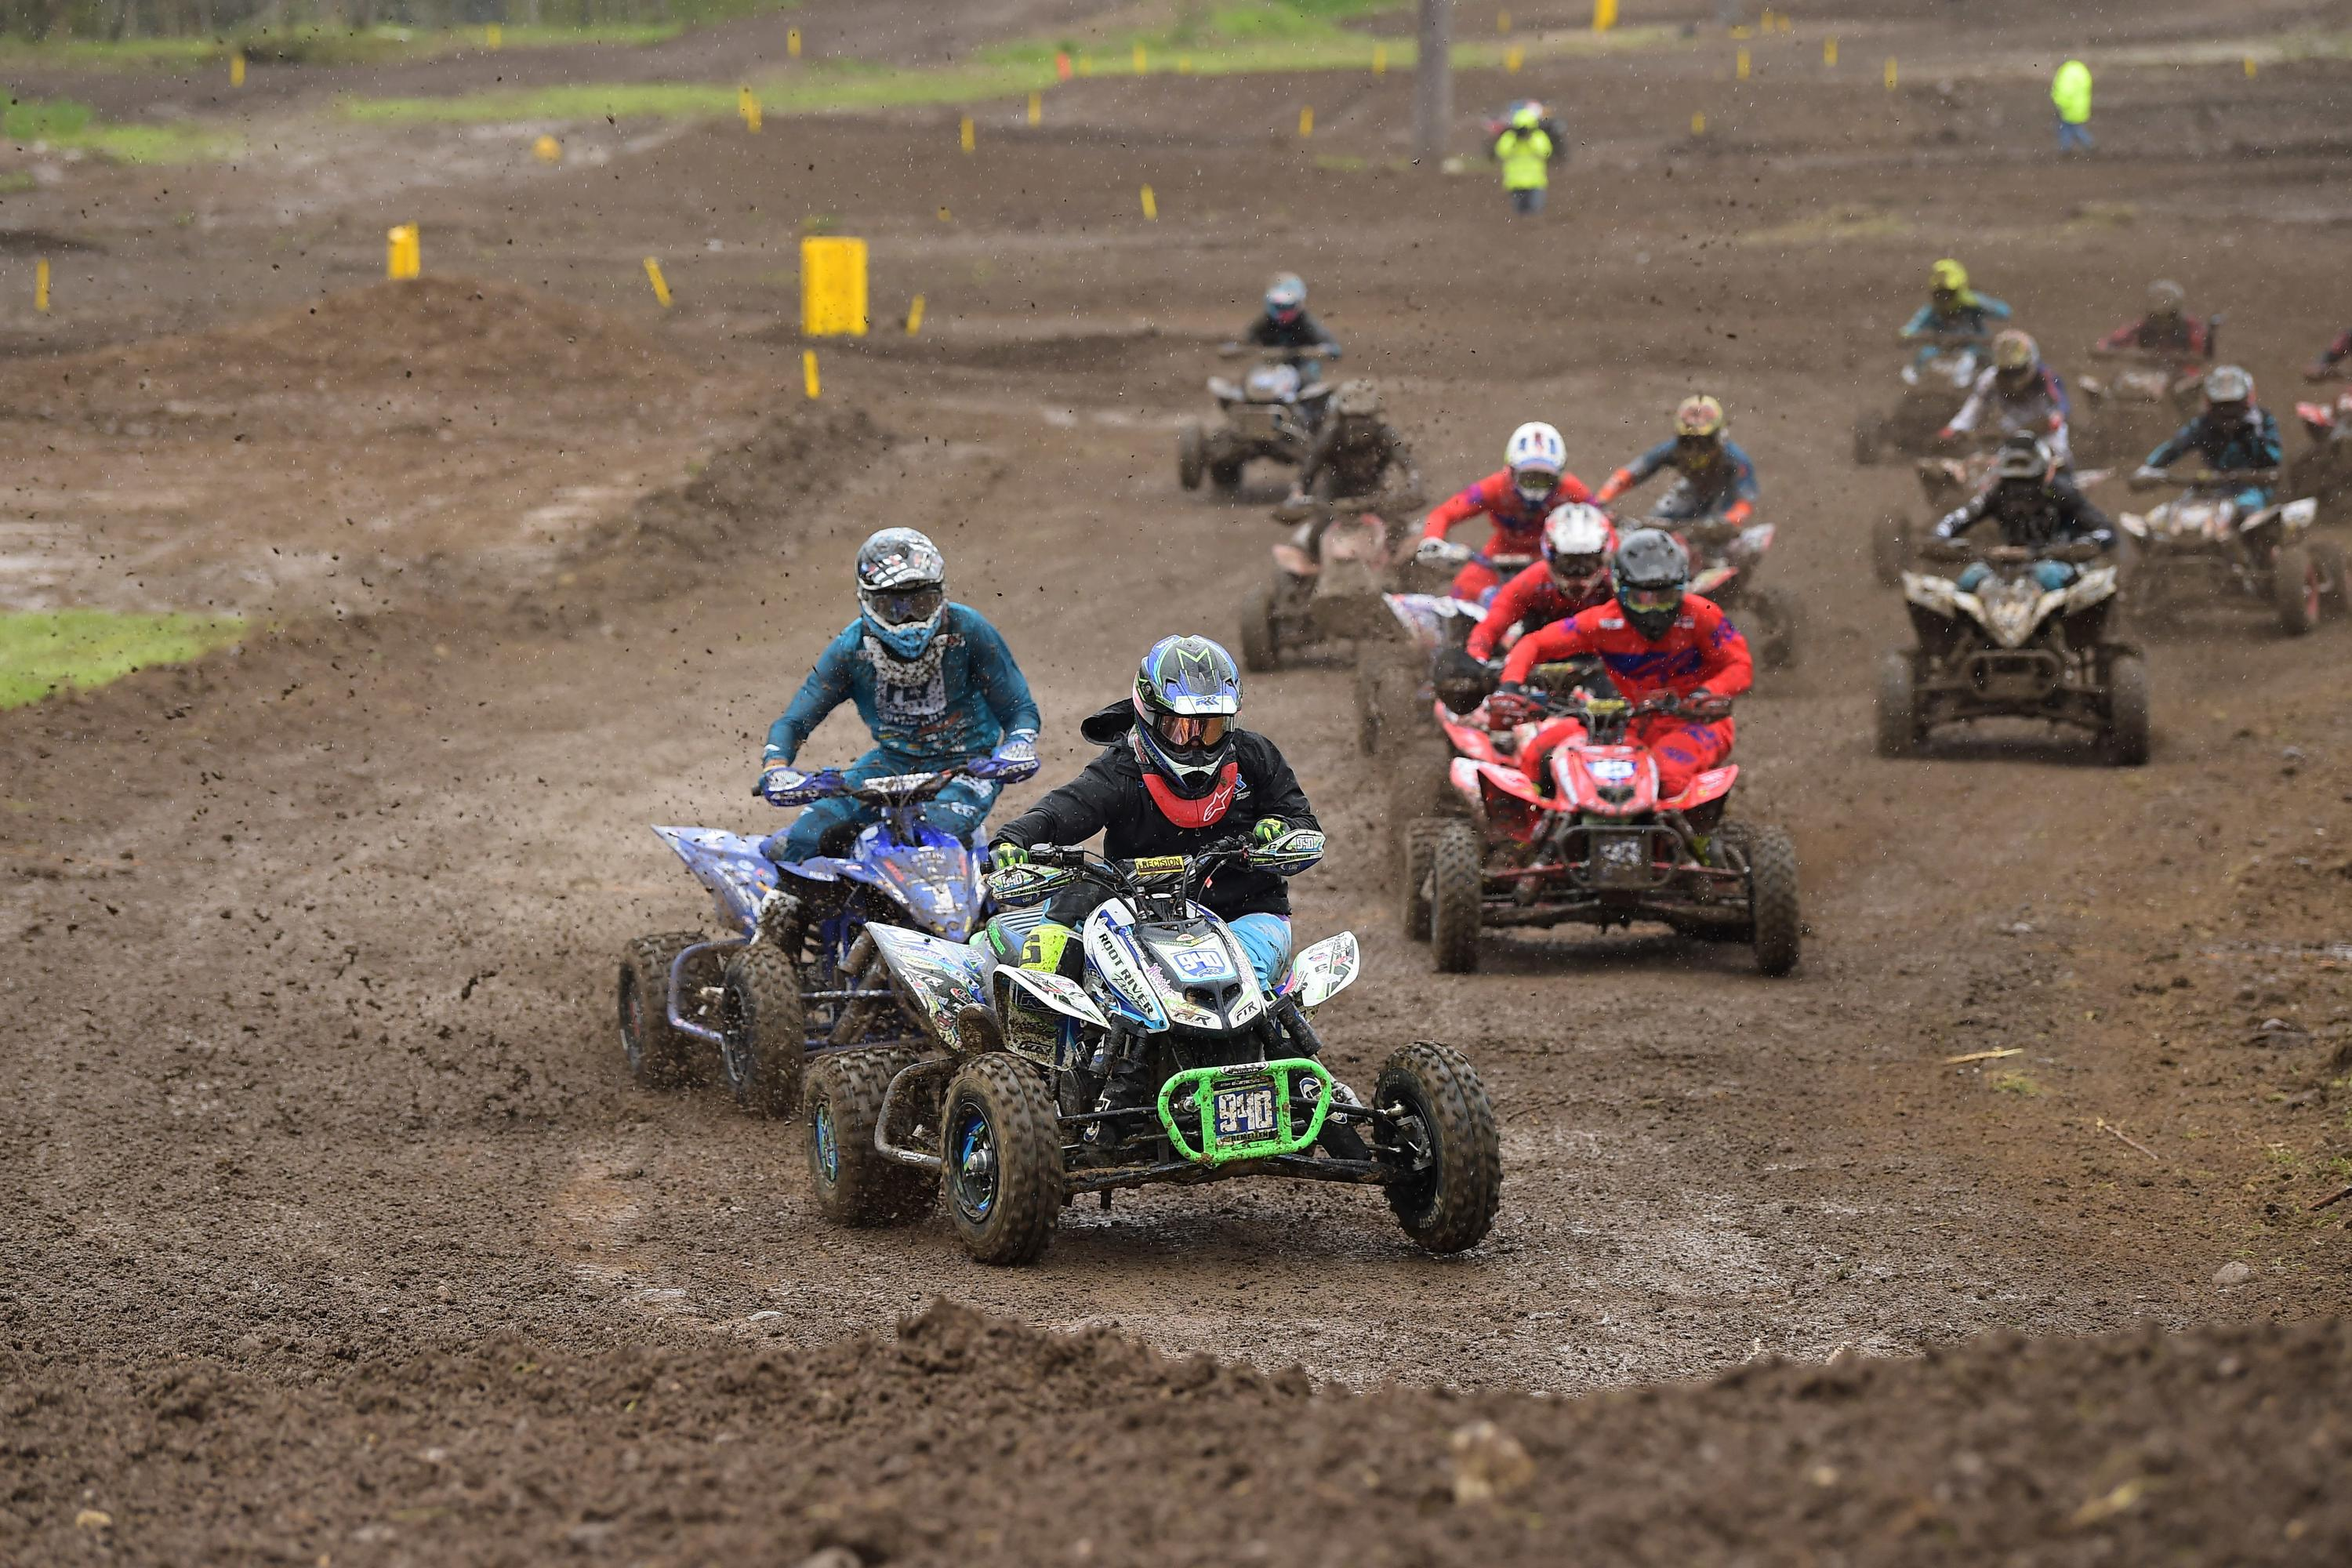 REVISED: RLT Competition Bulletin 2020-7: All Motorsports Activities Postponed Thru May 9/10